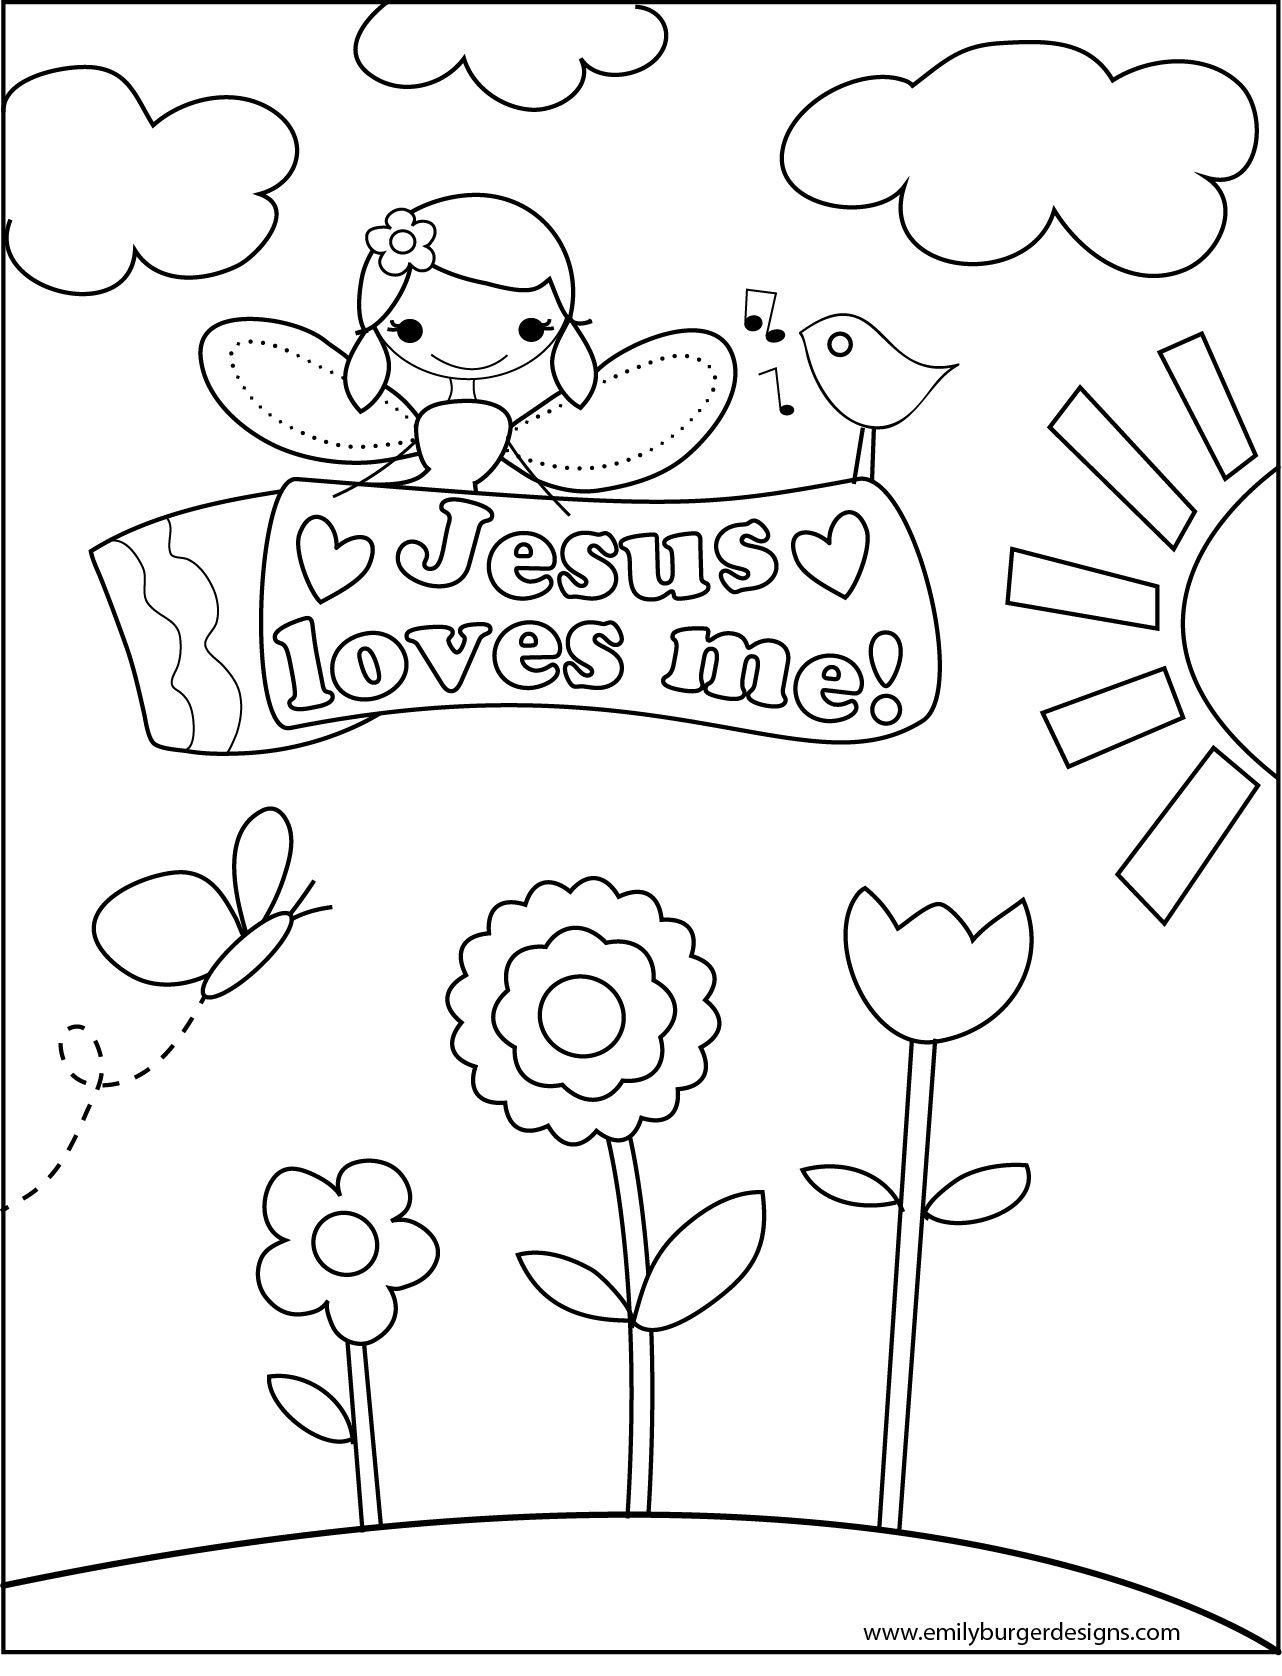 16 Coloring Page God Is Love Jesus Coloring Pages Love Coloring Pages Sunday School Coloring Pages